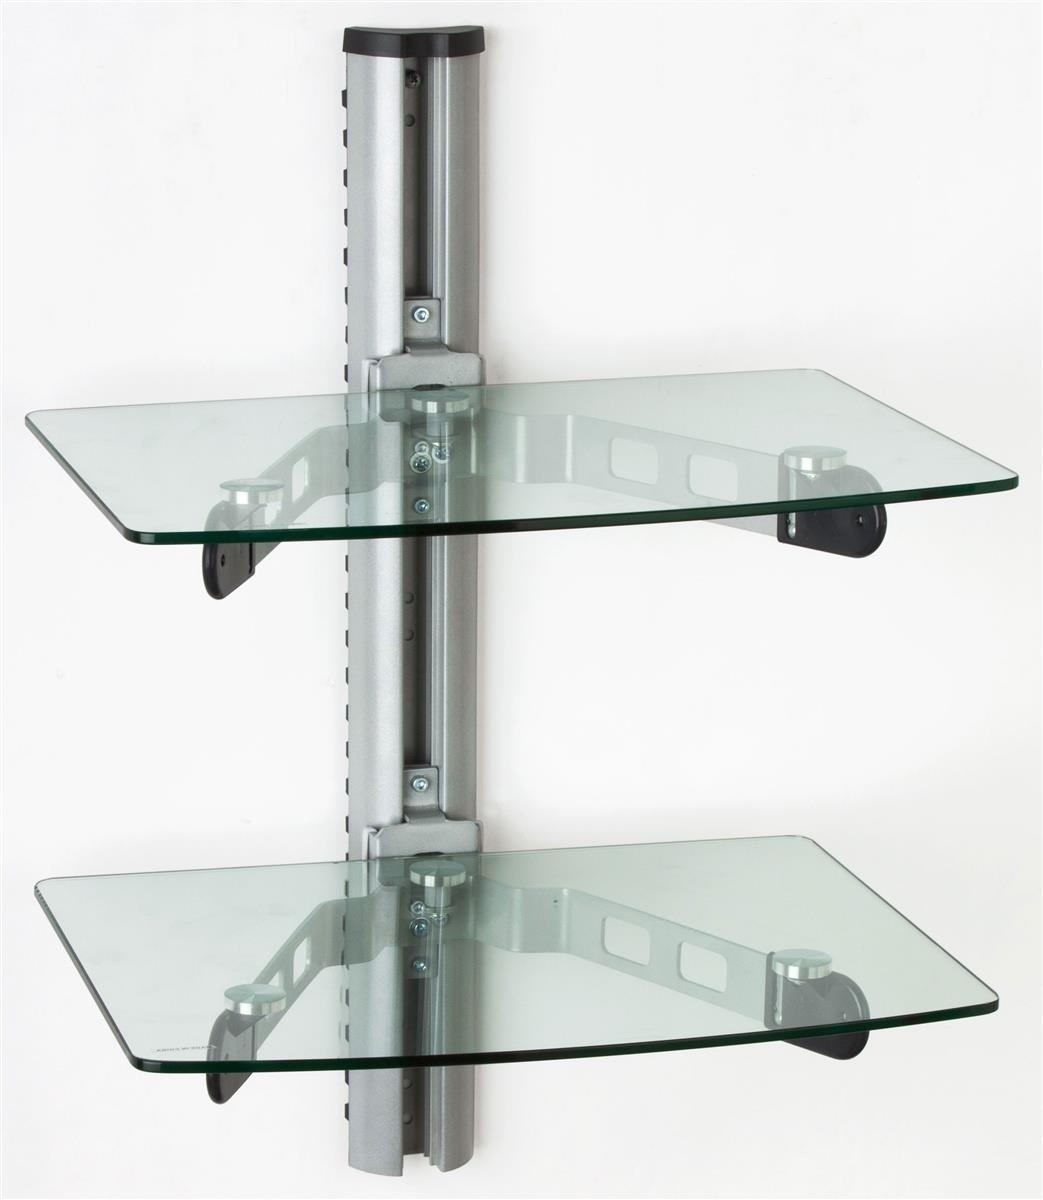 Wall Mounted Glass Shelves Av Component Stand For Black Glass Shelves Wall Mounted (Image 11 of 15)